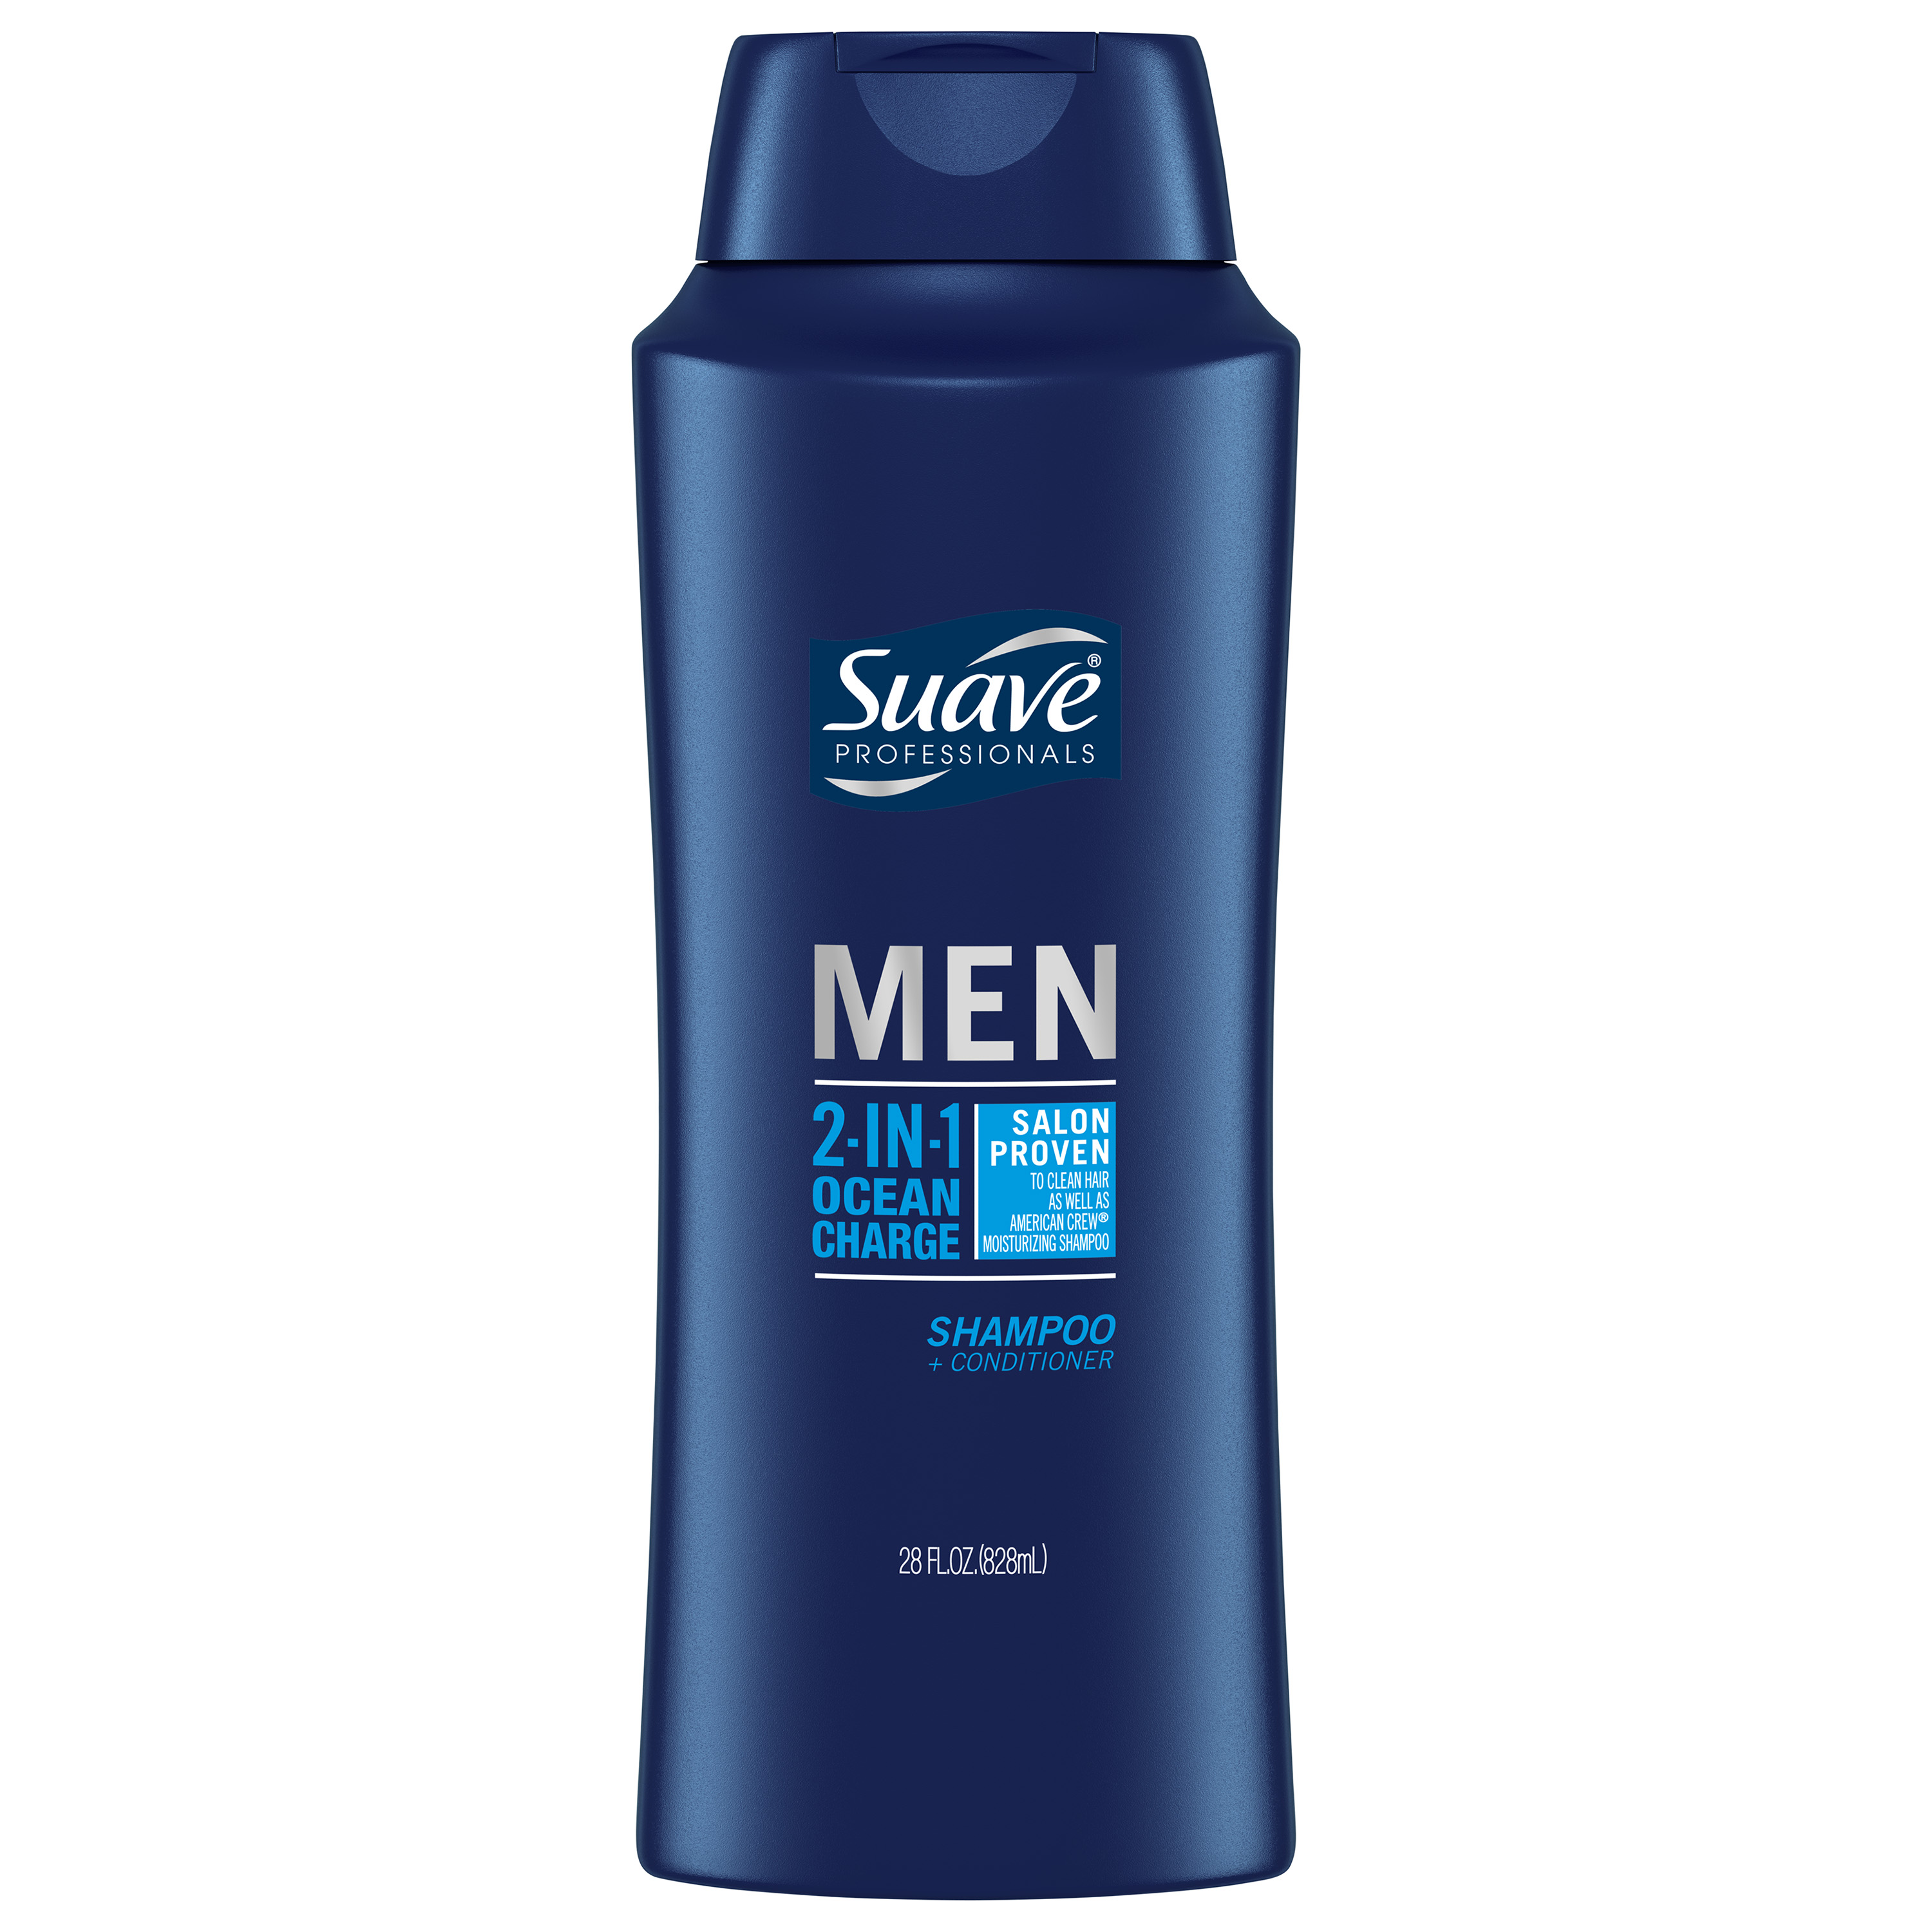 Suave Ocean Charge 2 in 1 Shampoo and Conditioner, 28 oz